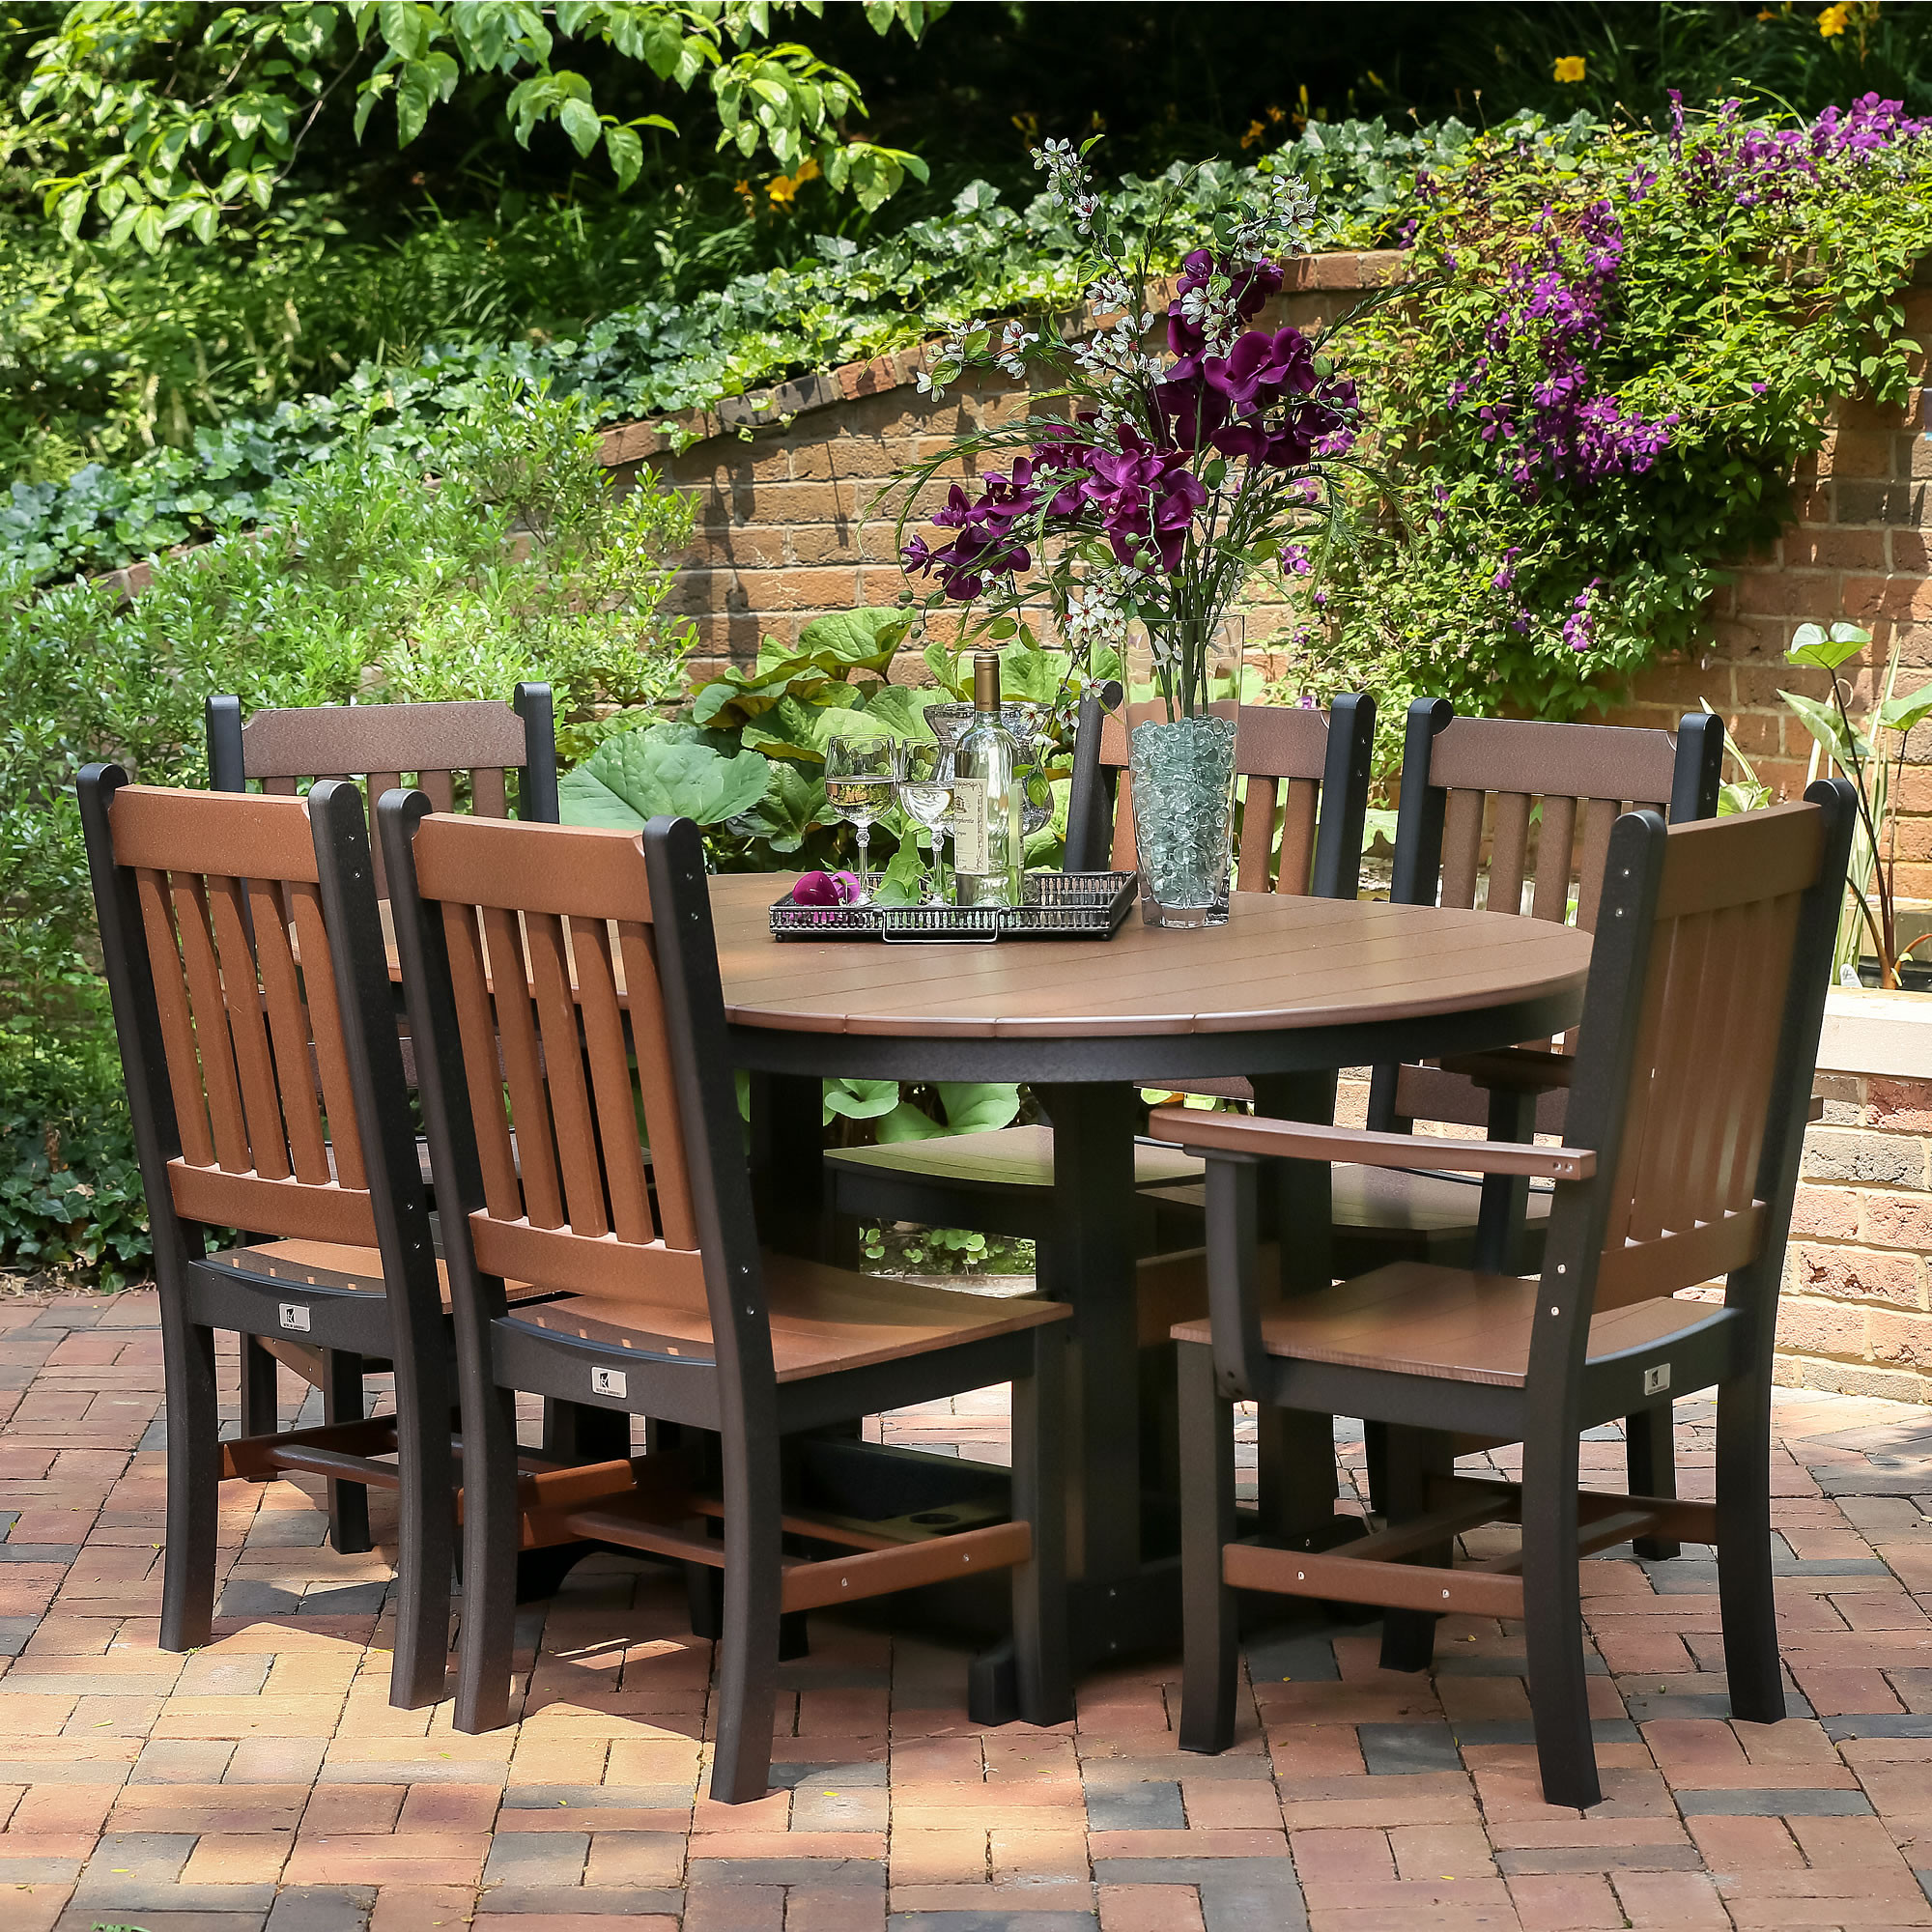 Berlin Gardens Oblong Mission Dining Set Garden Mission Chairs